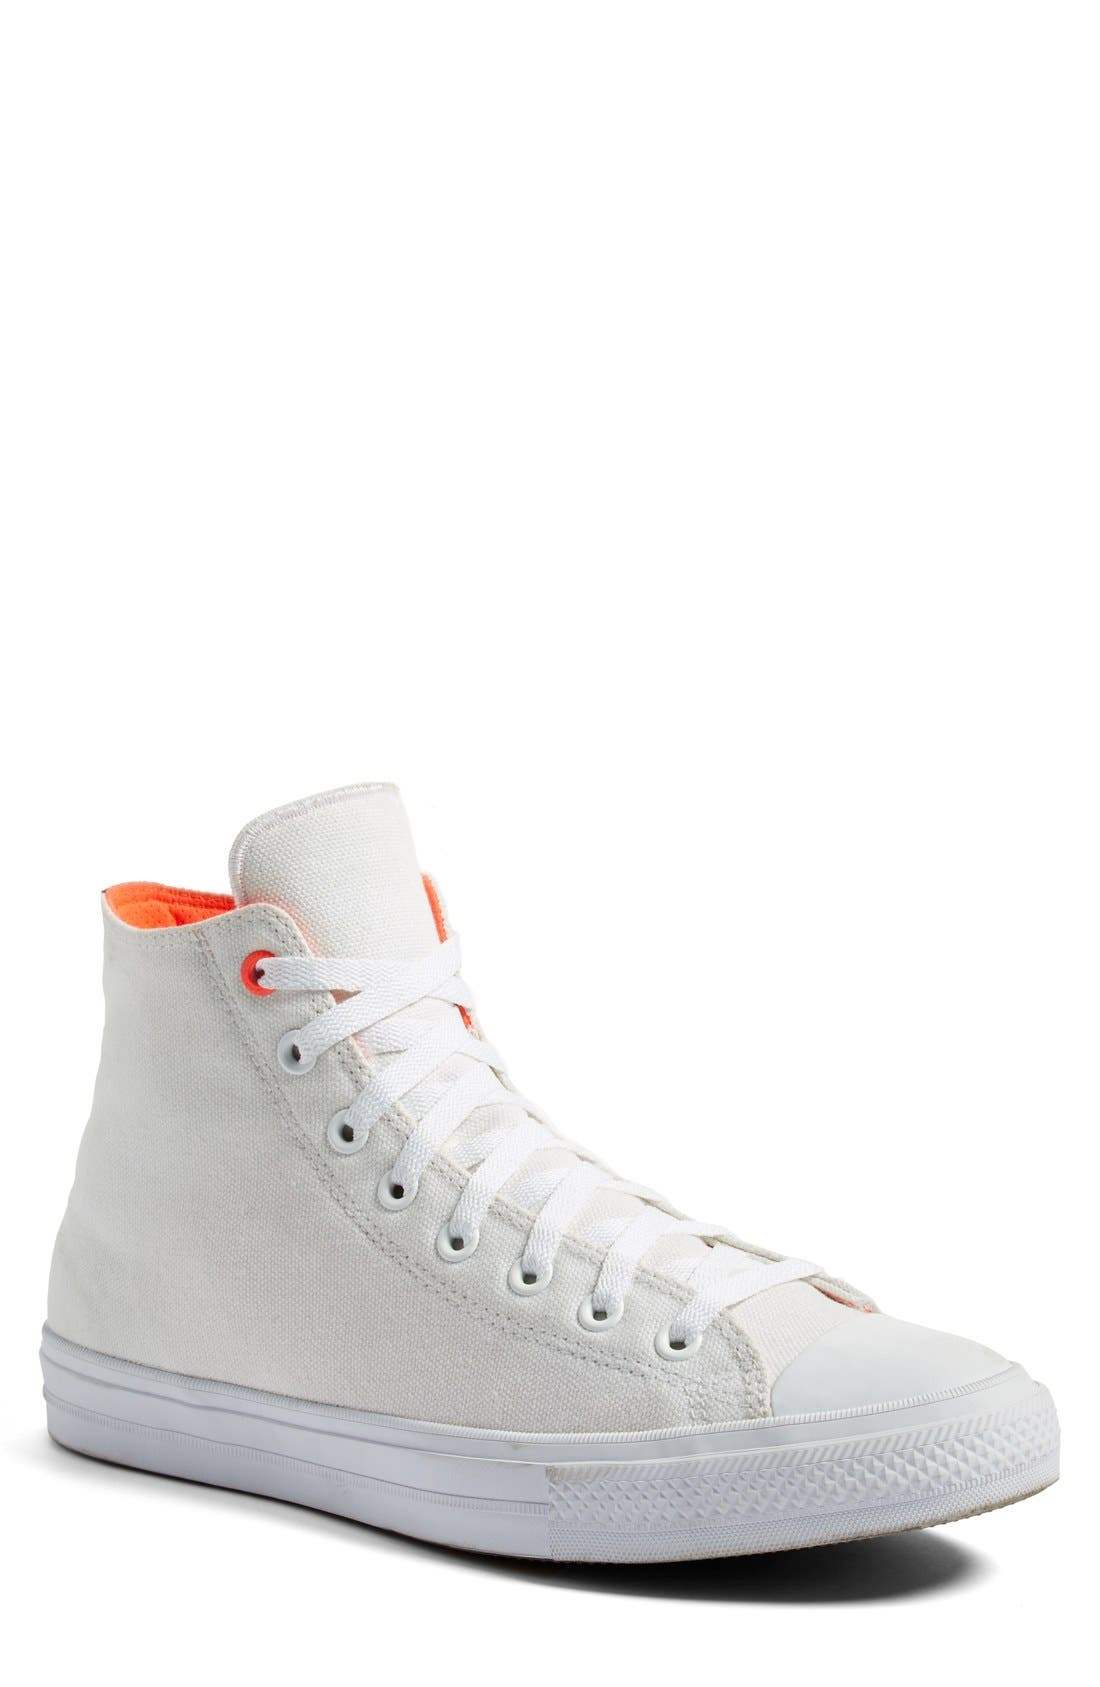 Chuck Taylor<sup>®</sup> All Star<sup>®</sup> II 'Shield' Water Repellent High Top Sneaker,                             Main thumbnail 1, color,                             White/ Lava/ Gum